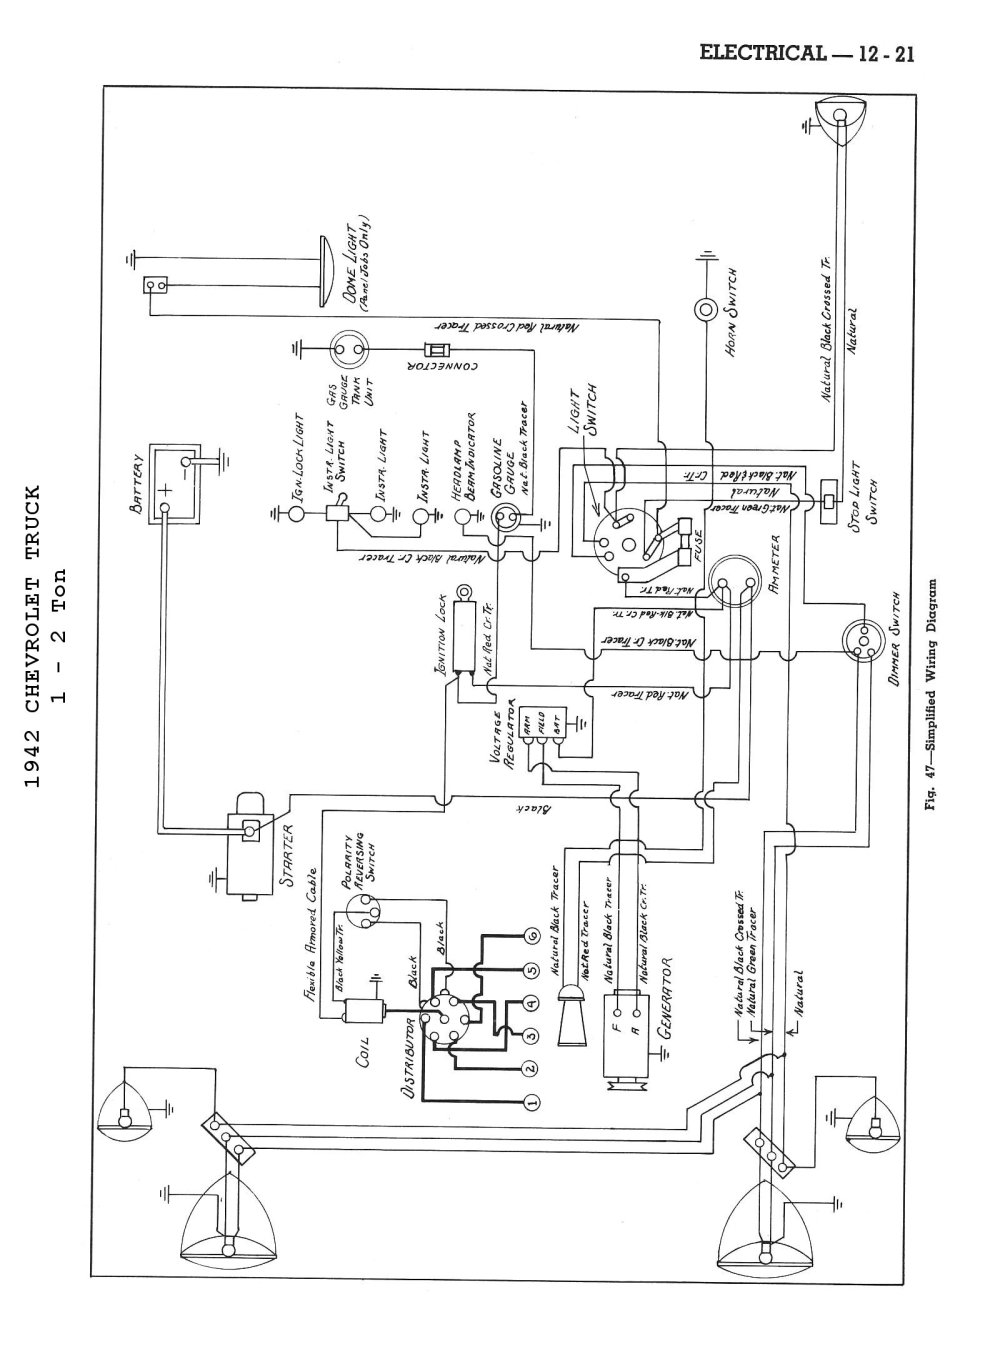 medium resolution of 1957 dodge truck wiring diagram wiring diagram data 1956 ford wiring diagram 1953 dodge wiring diagram